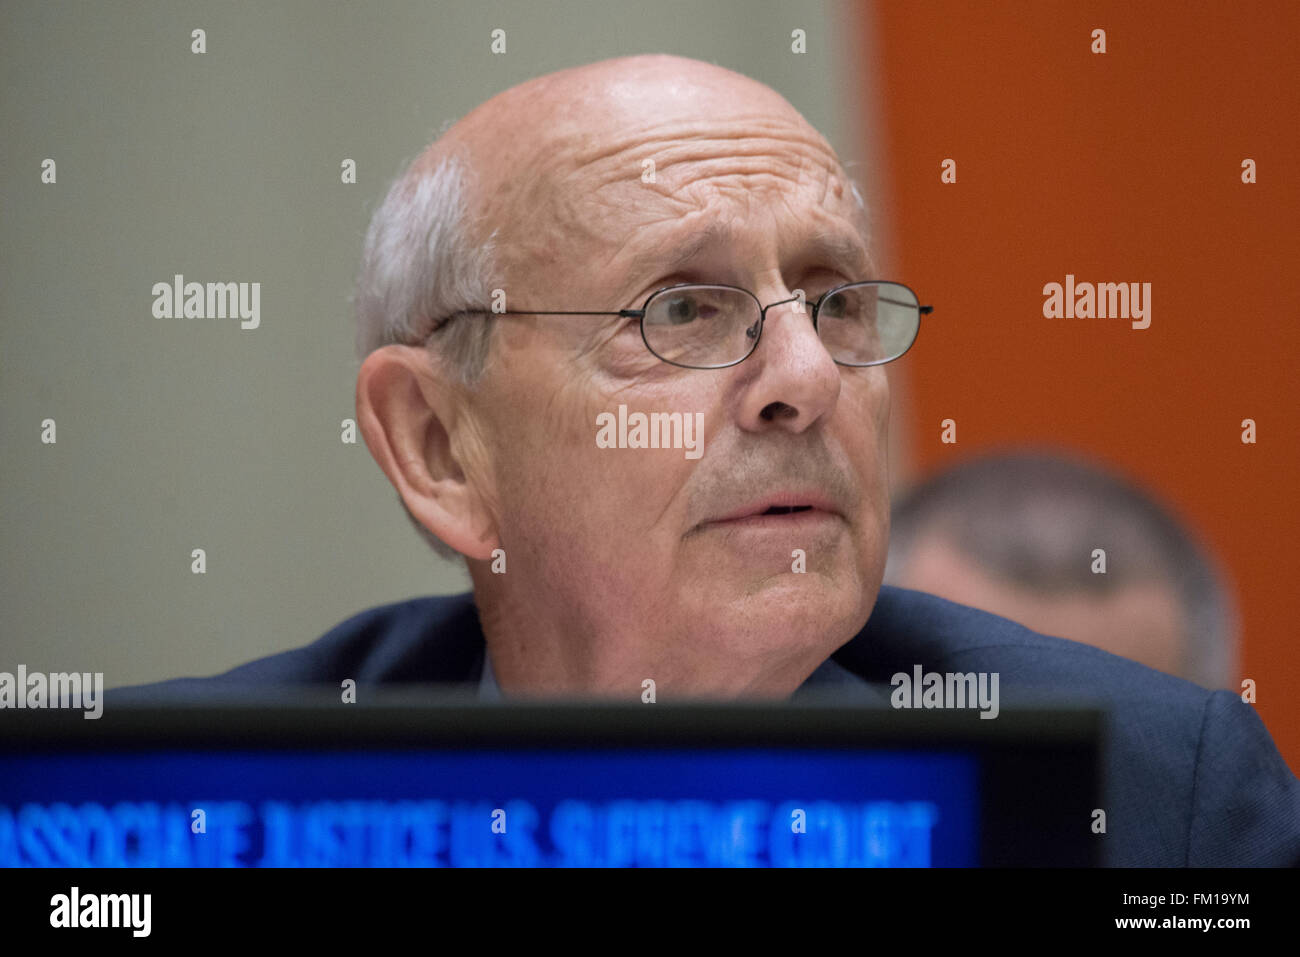 New York, United States. 10th Mar, 2016. US Supreme Court Justice Stephen Breyer offers remarks at the session. - Stock Image